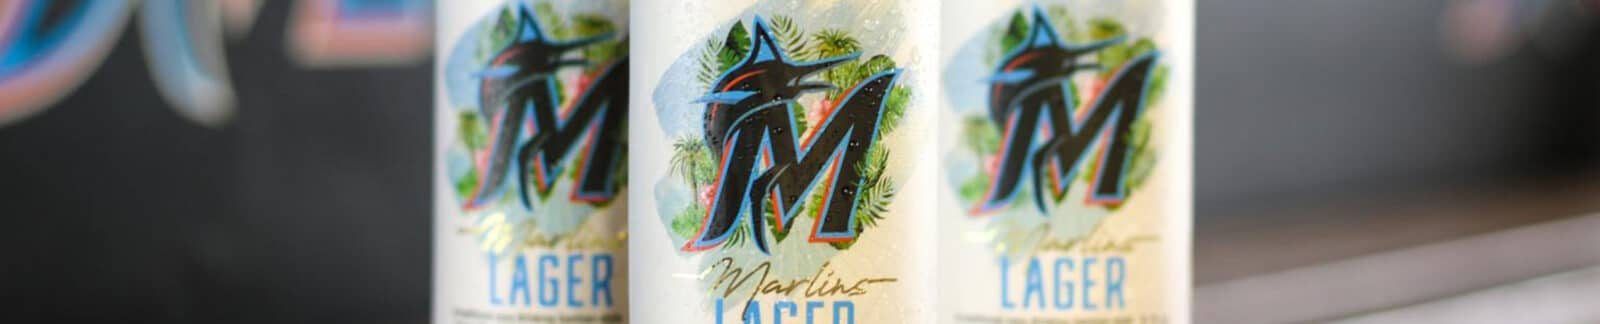 Marlins Lager by Biscayne Bay Brewing Co. header